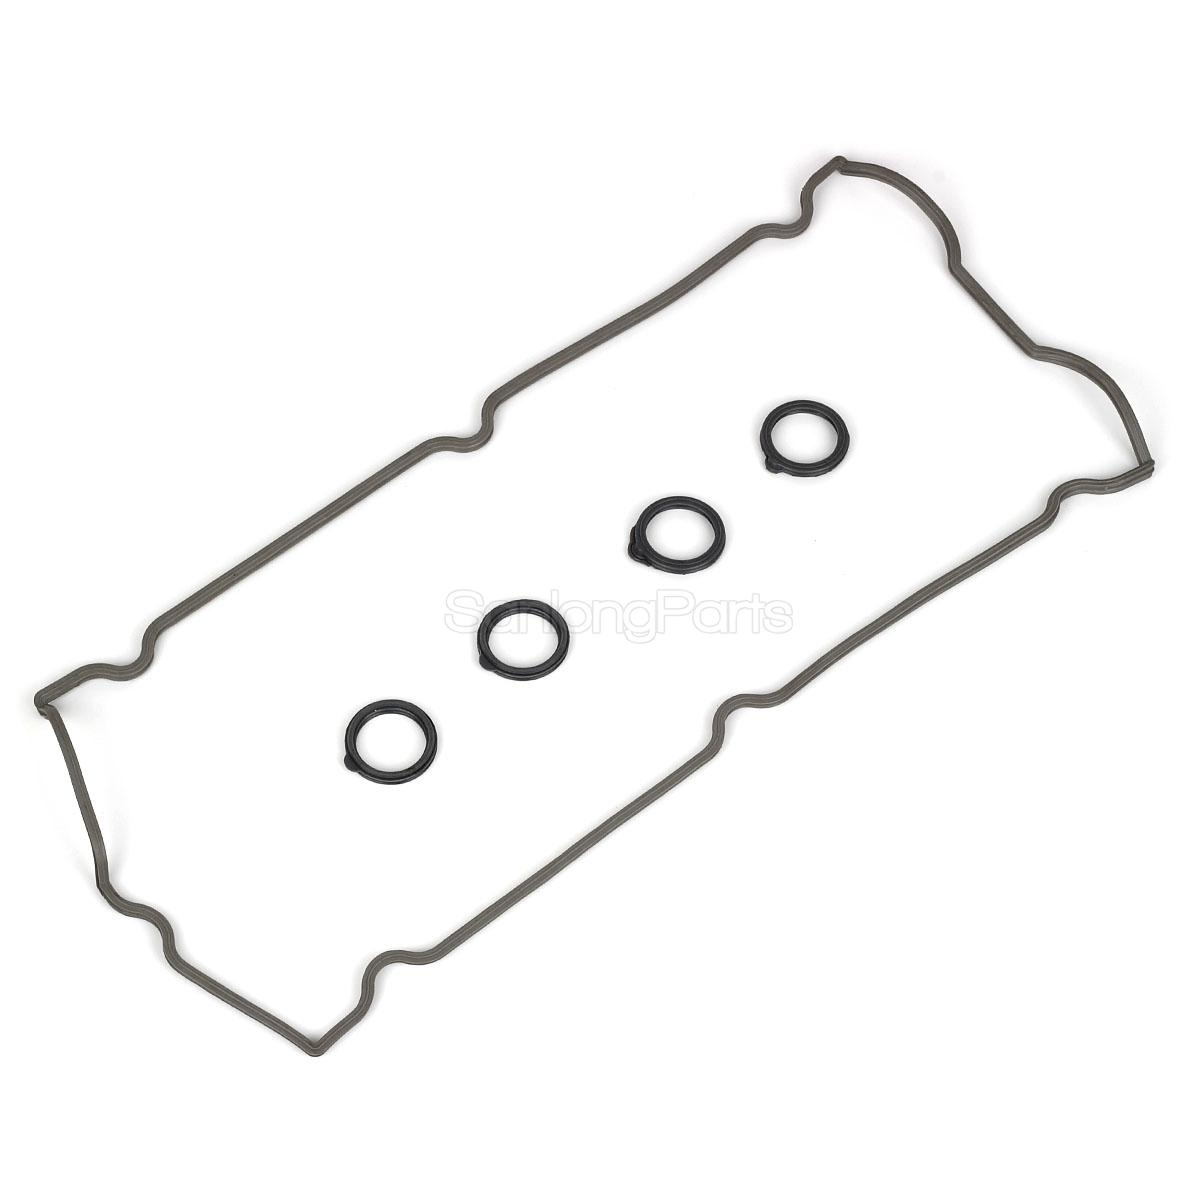 Valve Cover Gasket Kit Fit Chrysler Pt Cruiser Sebring For